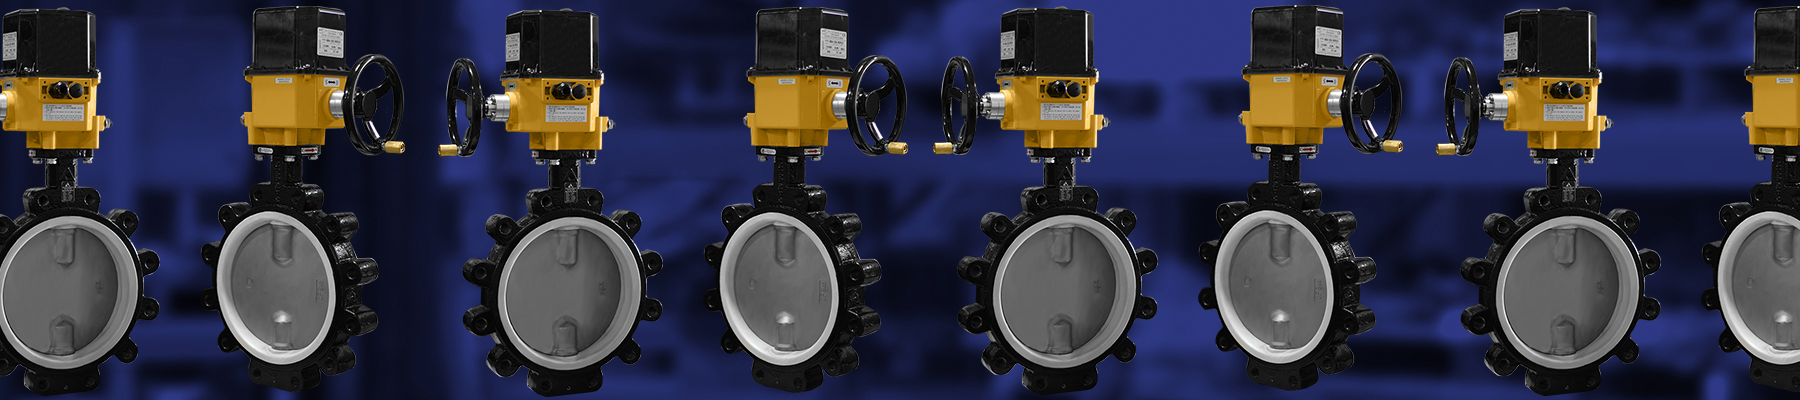 "10"" Modulating Butterfly Valve"